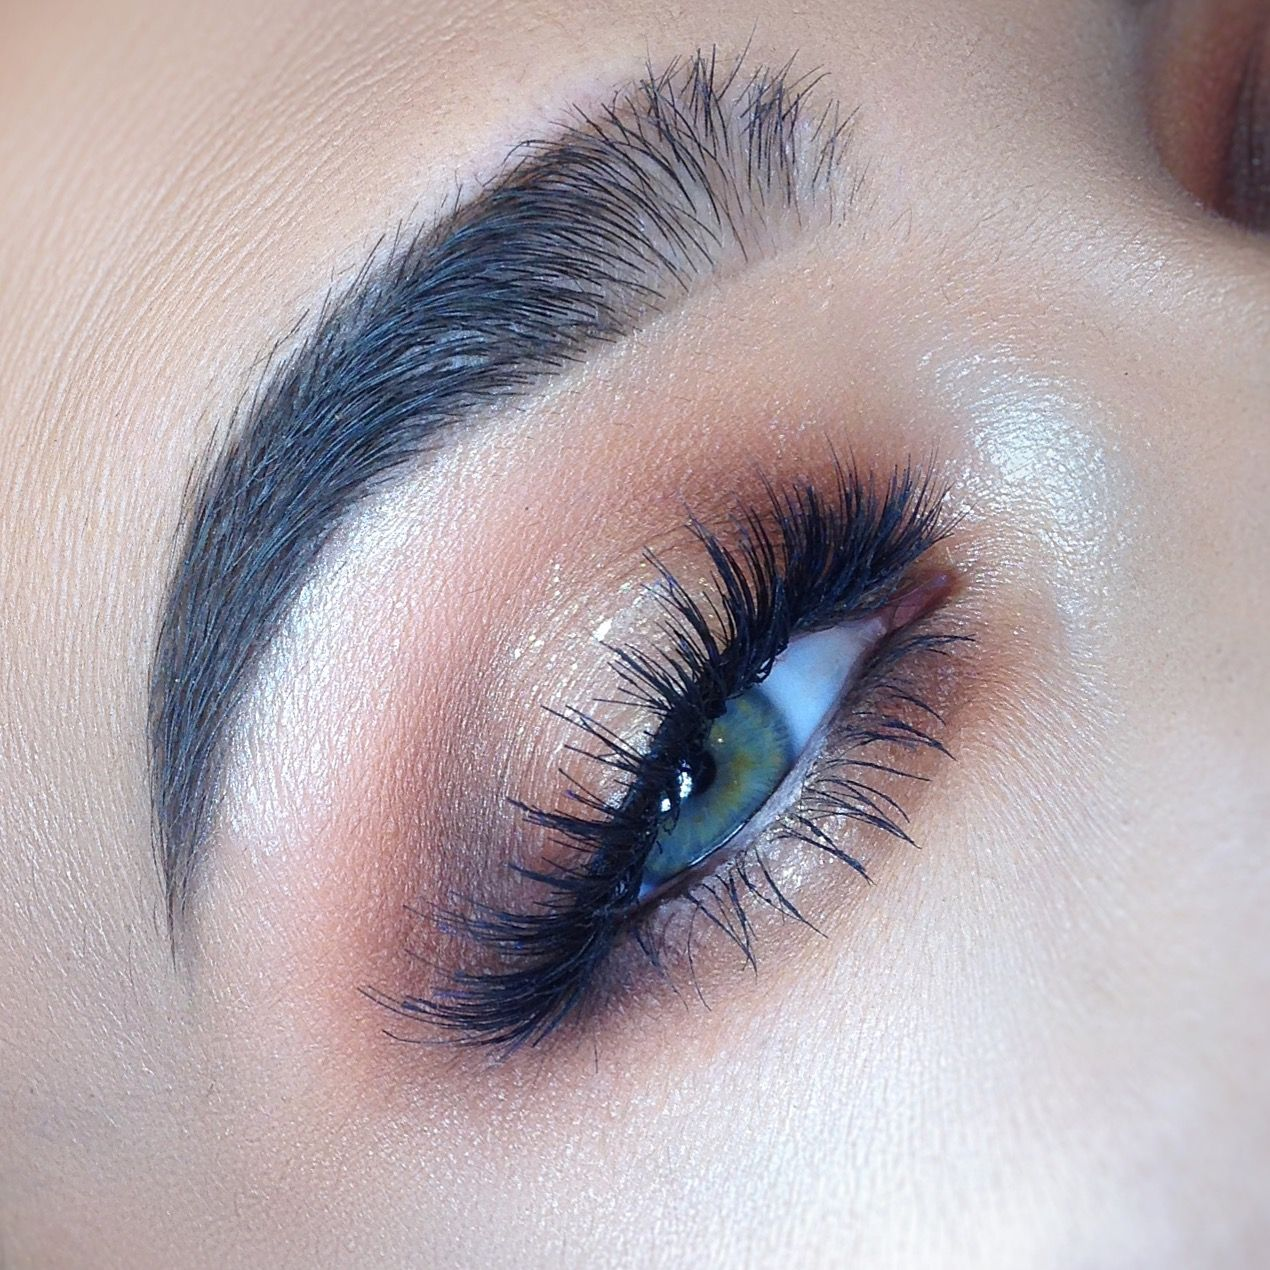 Halo makeup tutorial makeup geek makeup pinterest make up watch makeup video tutorials learn tips from the experts and even buy our makeup online all items ship worldwide and are paraben free baditri Image collections